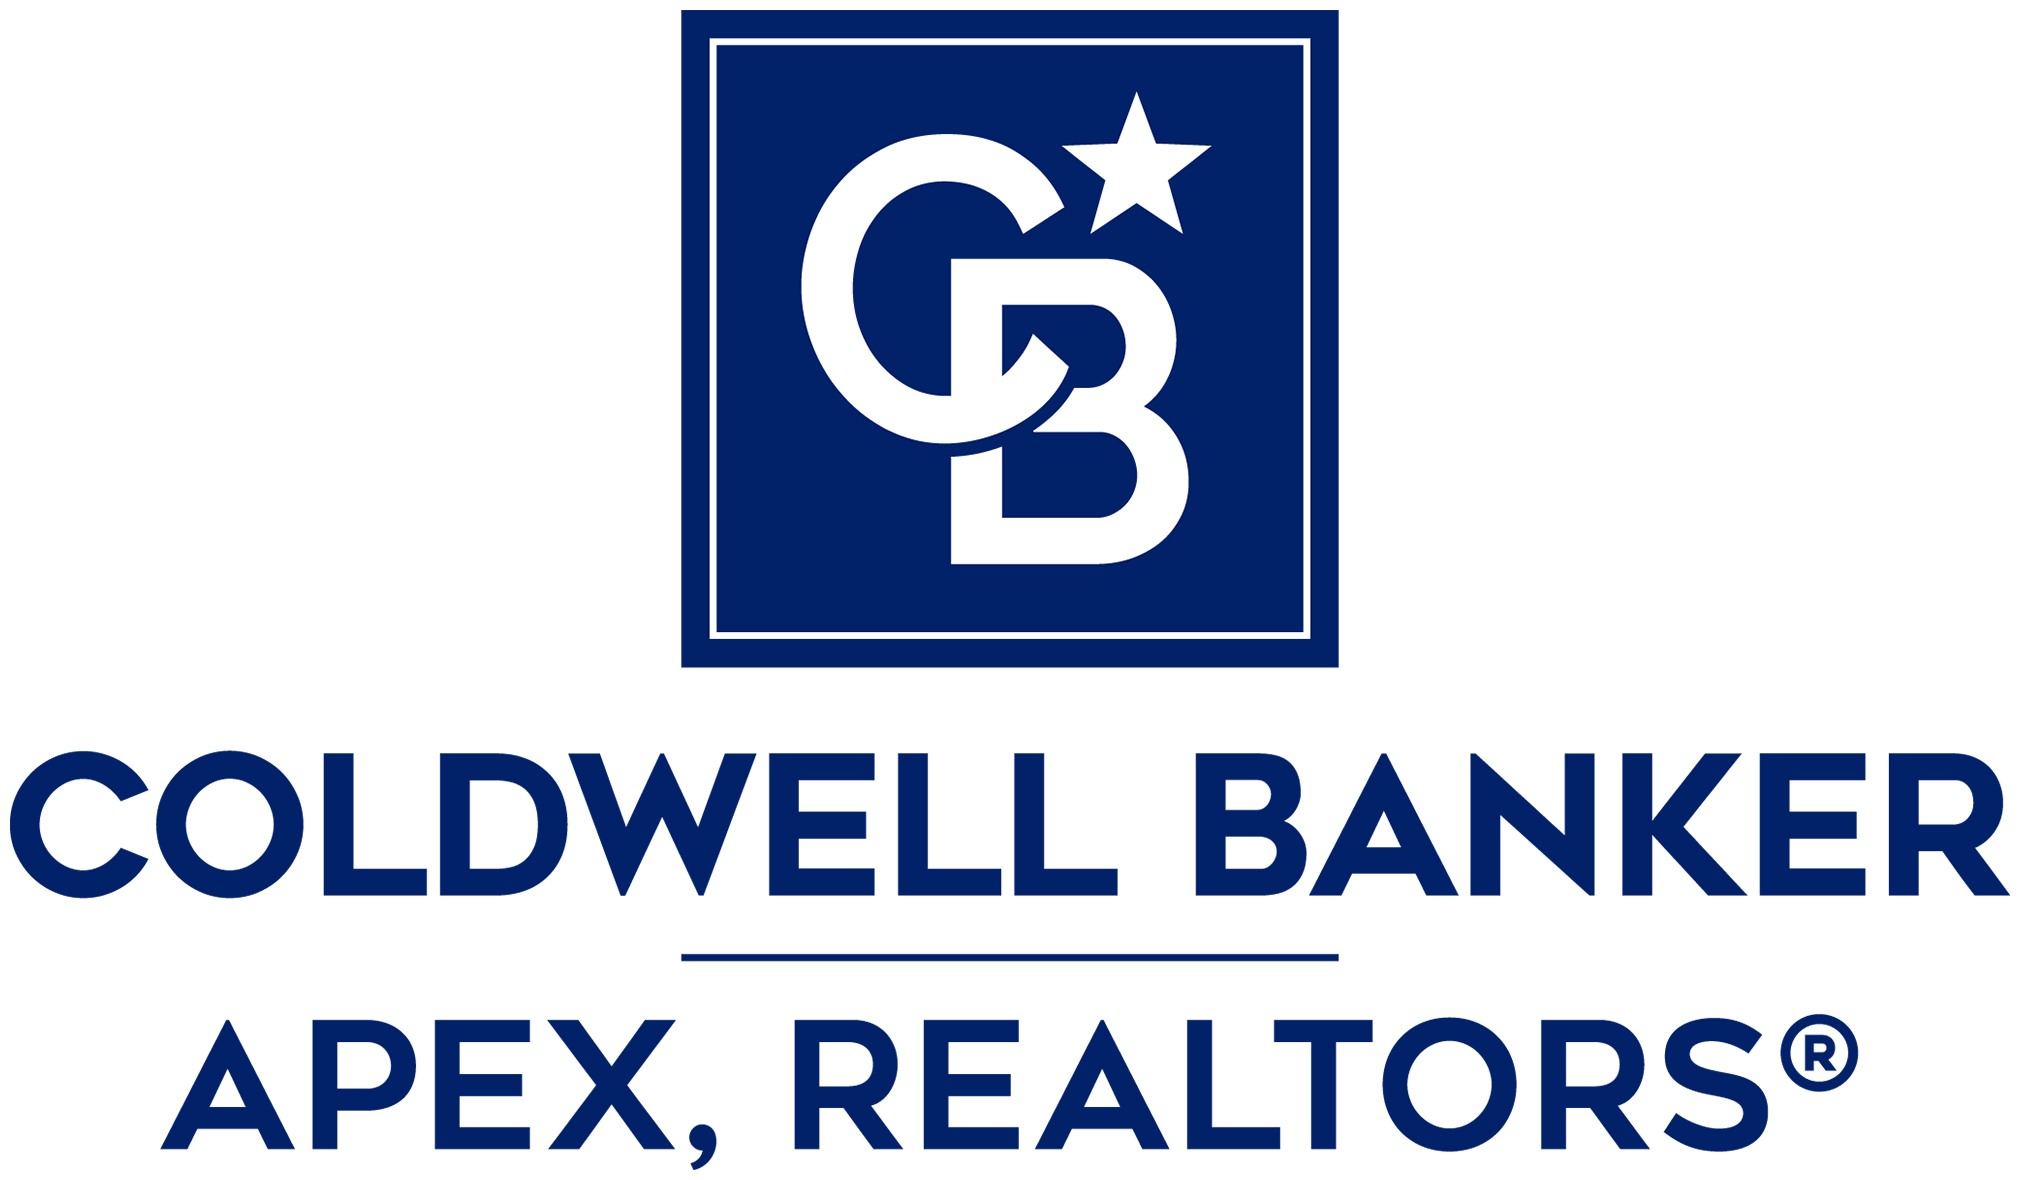 Chin Williams - Coldwell Banker Apex Realtors